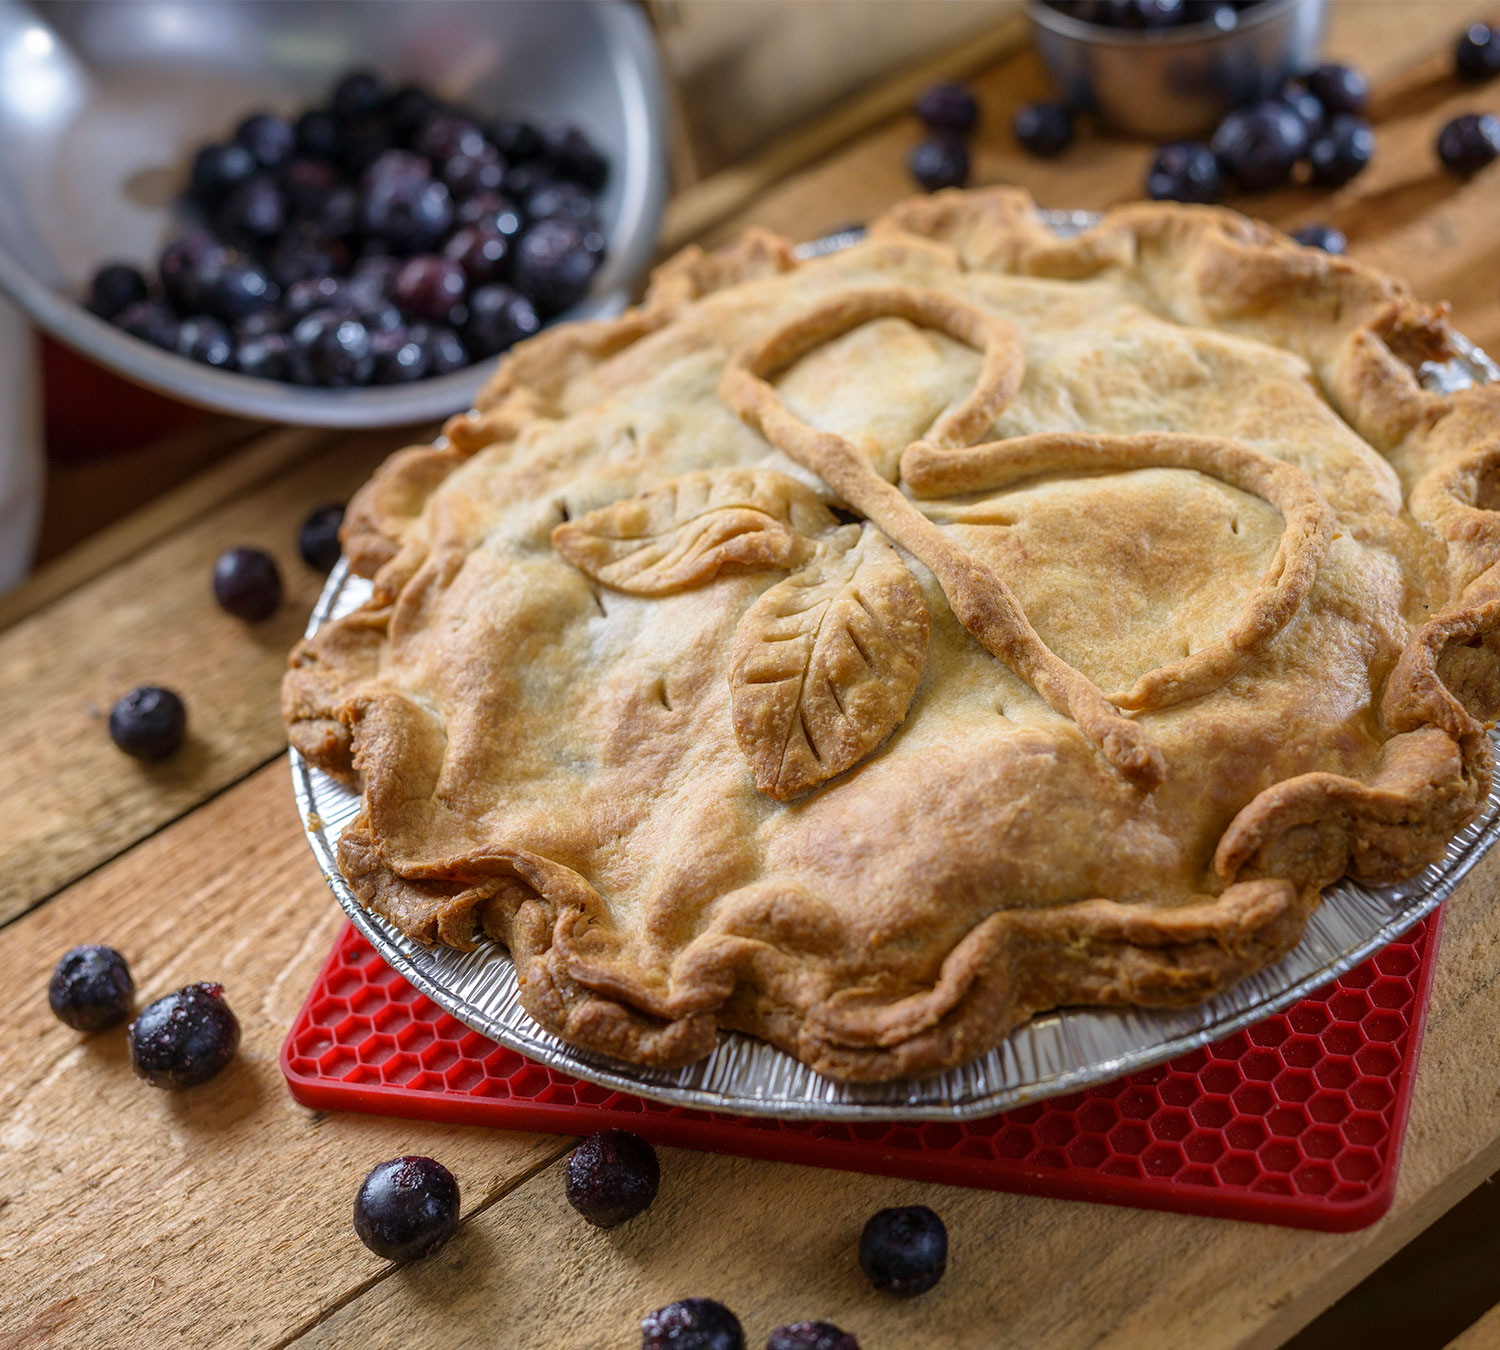 Blueberry Pastry Side